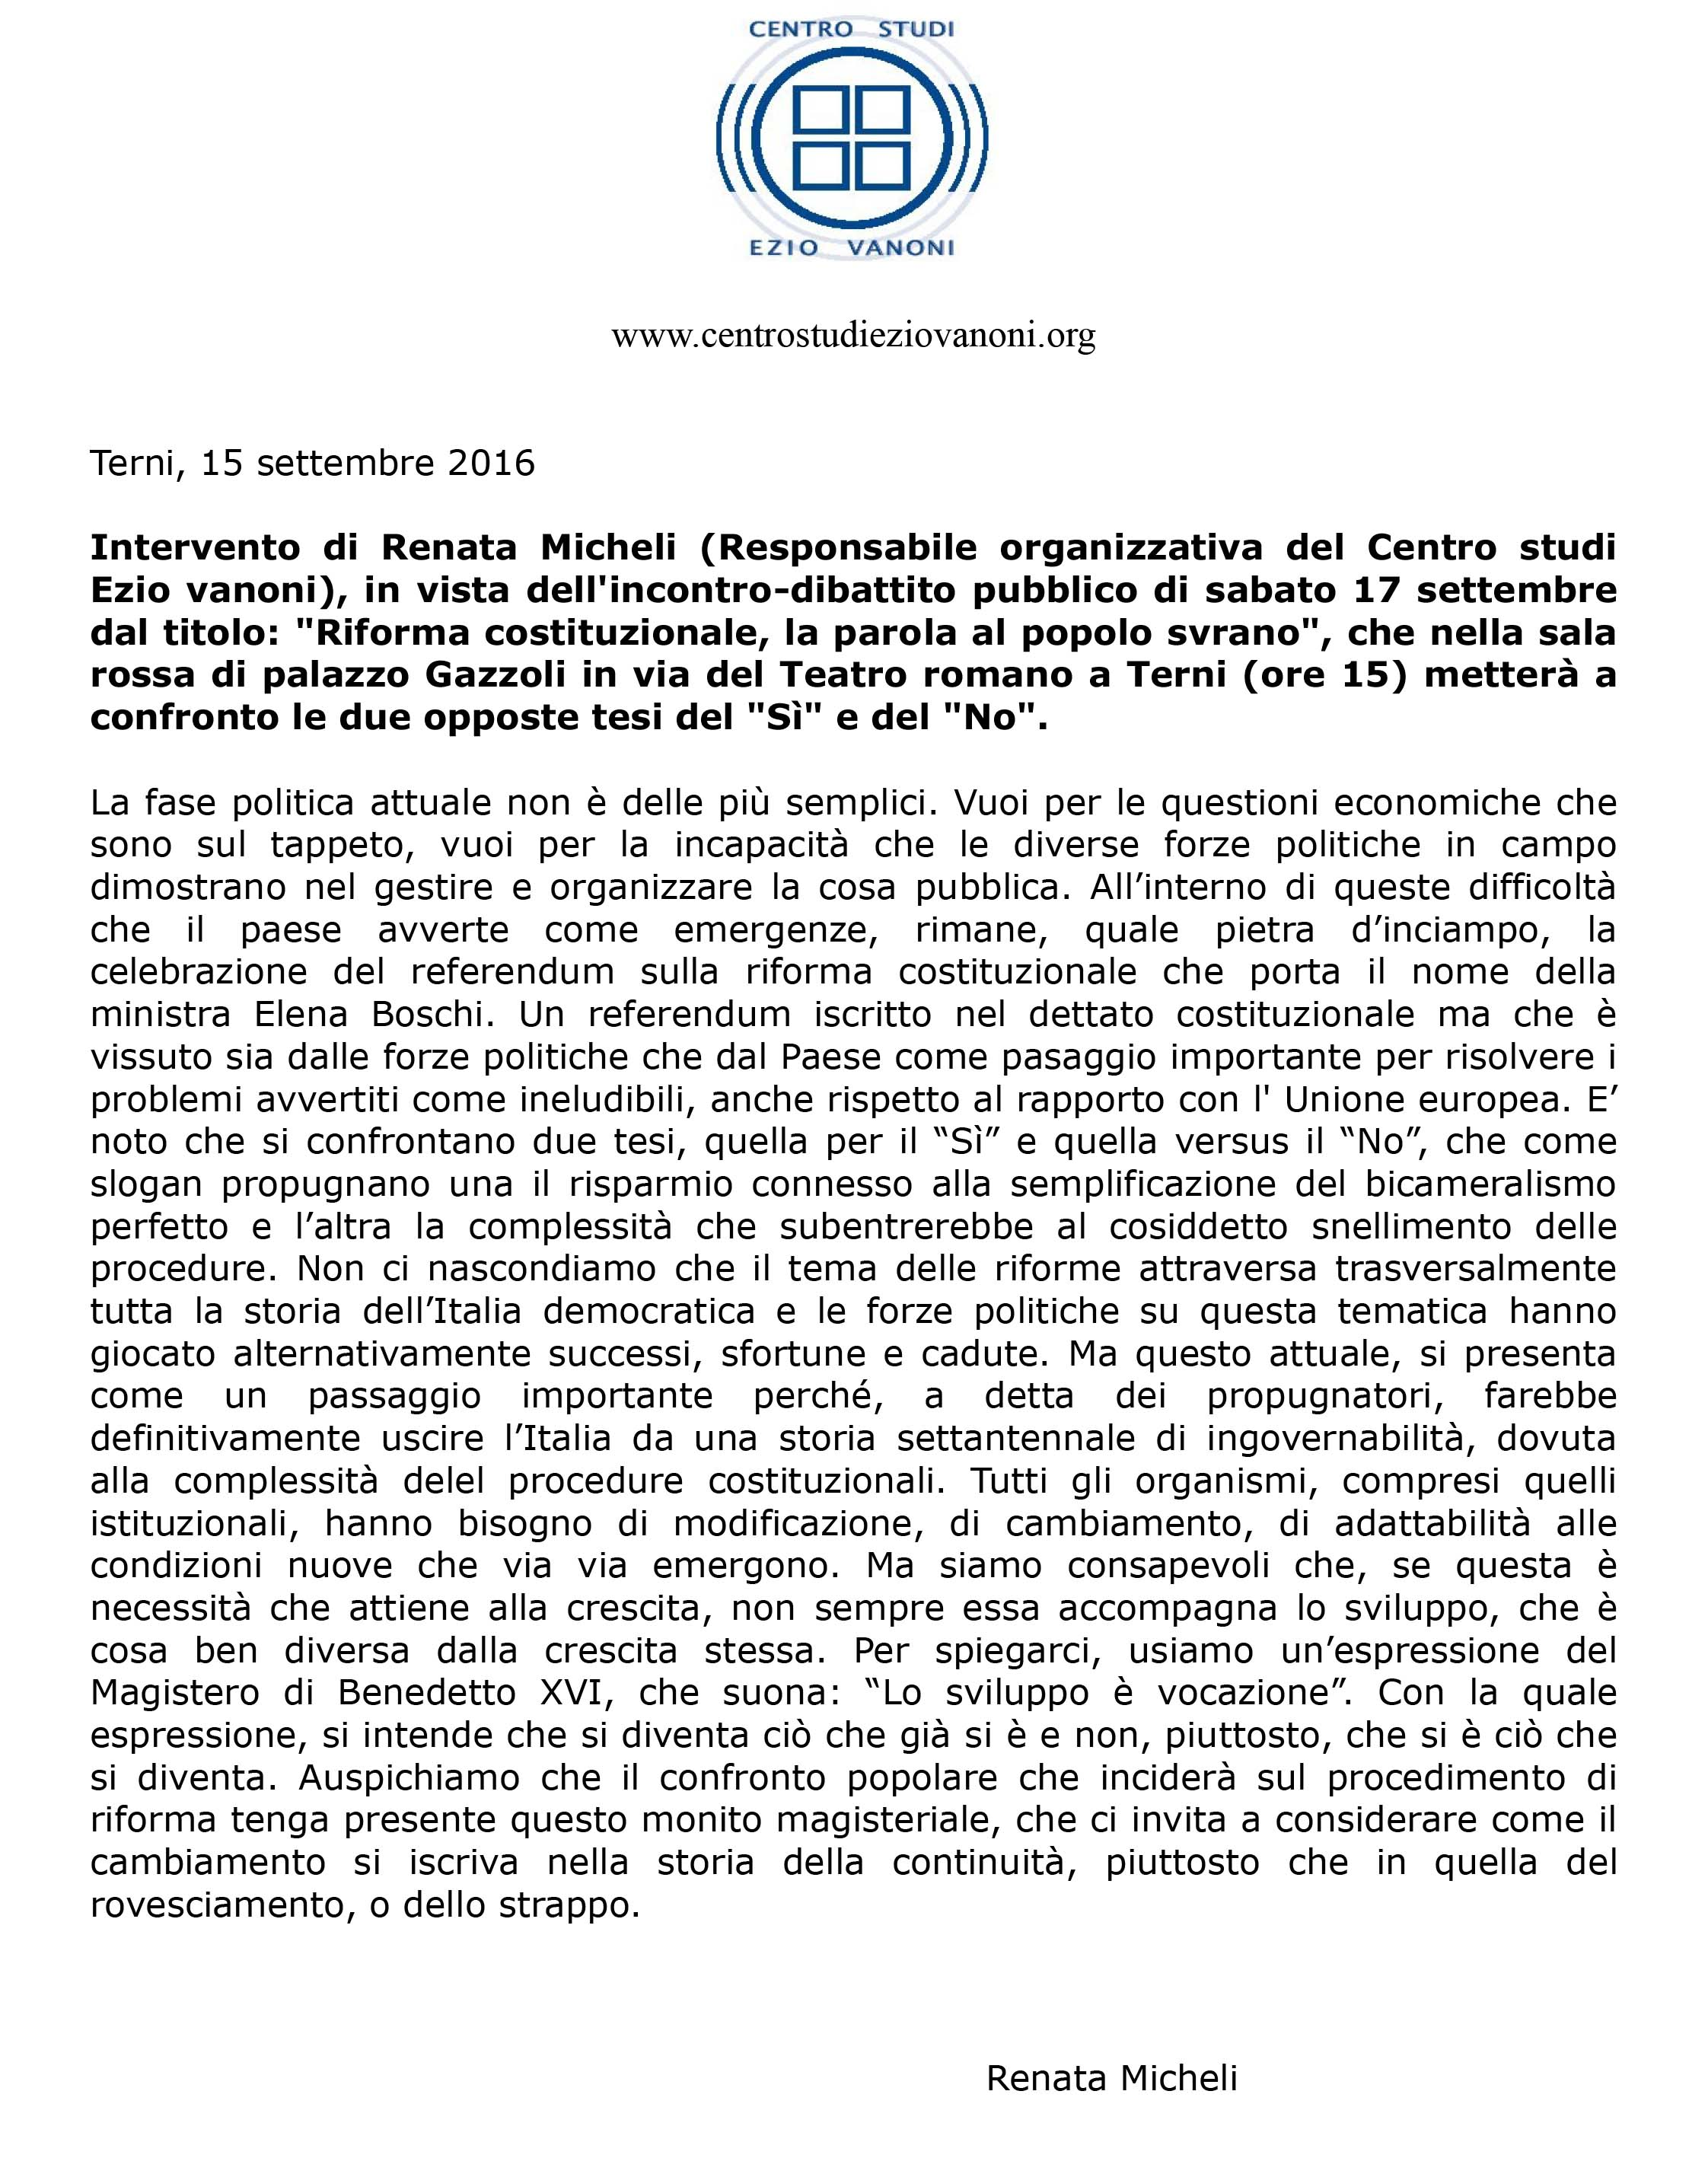 interventorenatamicheli-15-settembre-2016